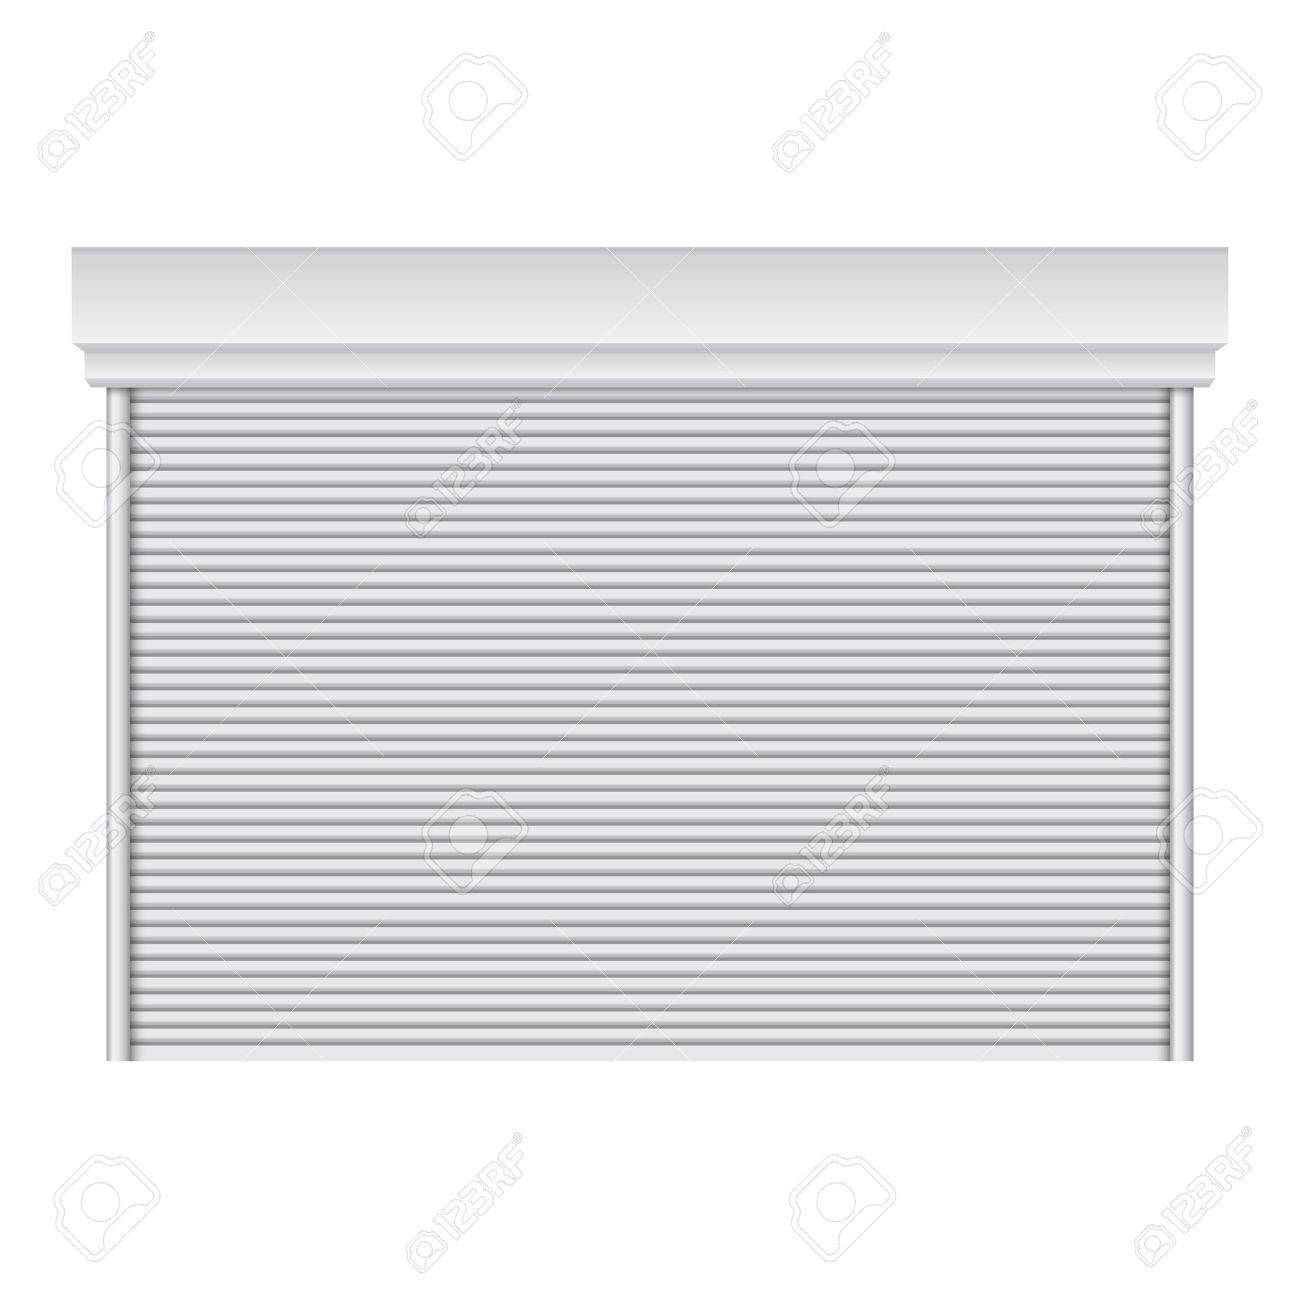 Realistic roll up door vector on isolated white background Stock Vector - 24027756